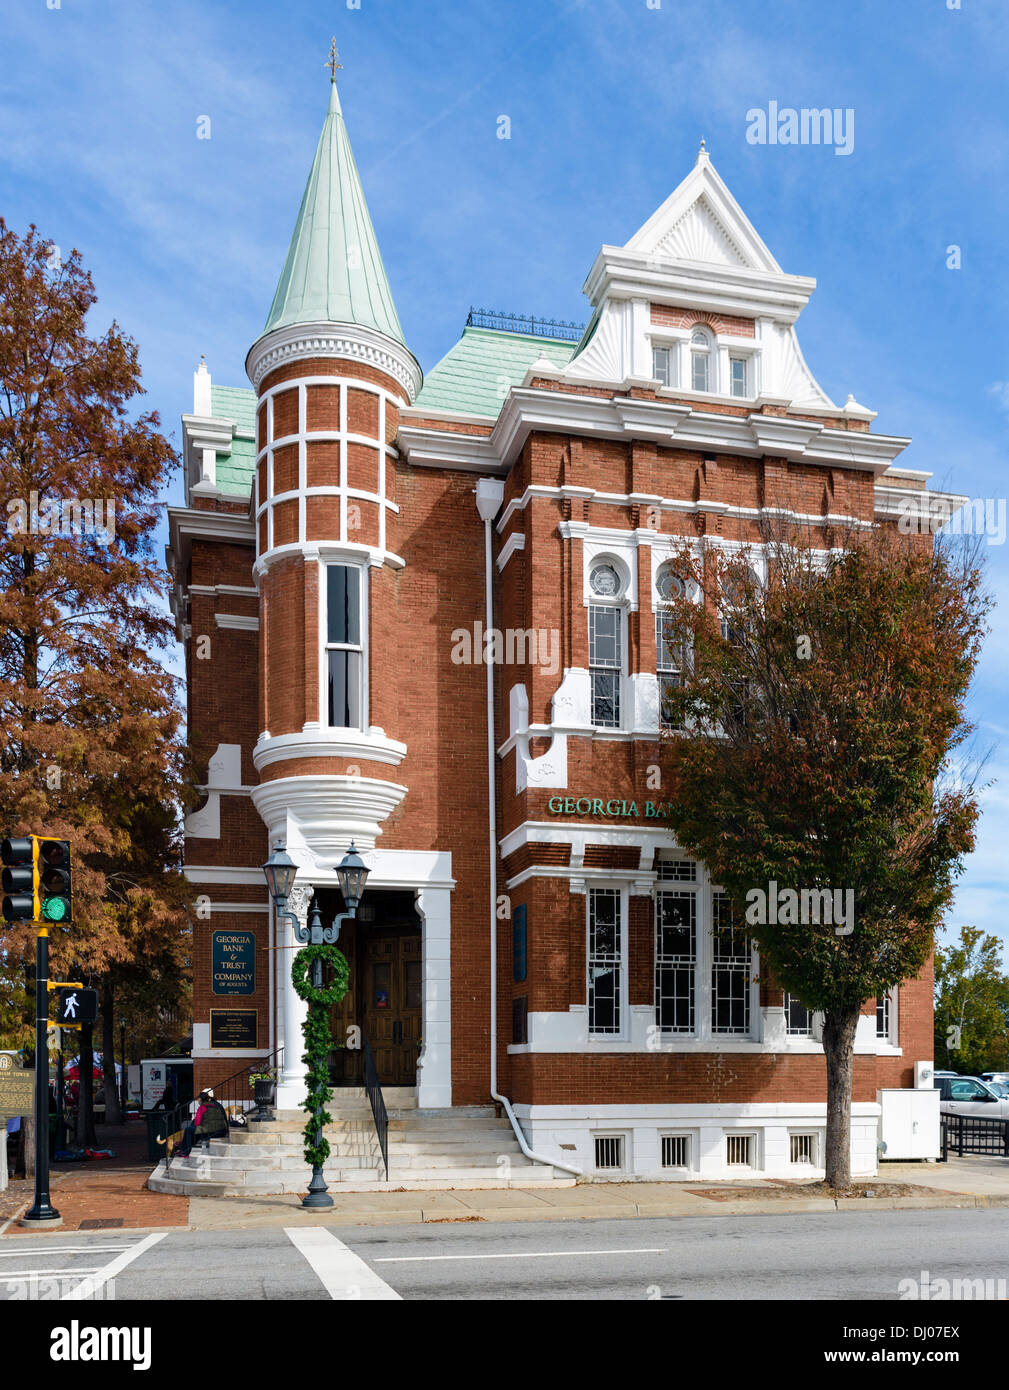 The historic Cotton Exchange Building on Reynolds Street in downtown Augusta, Georgia, USA Stock Photo